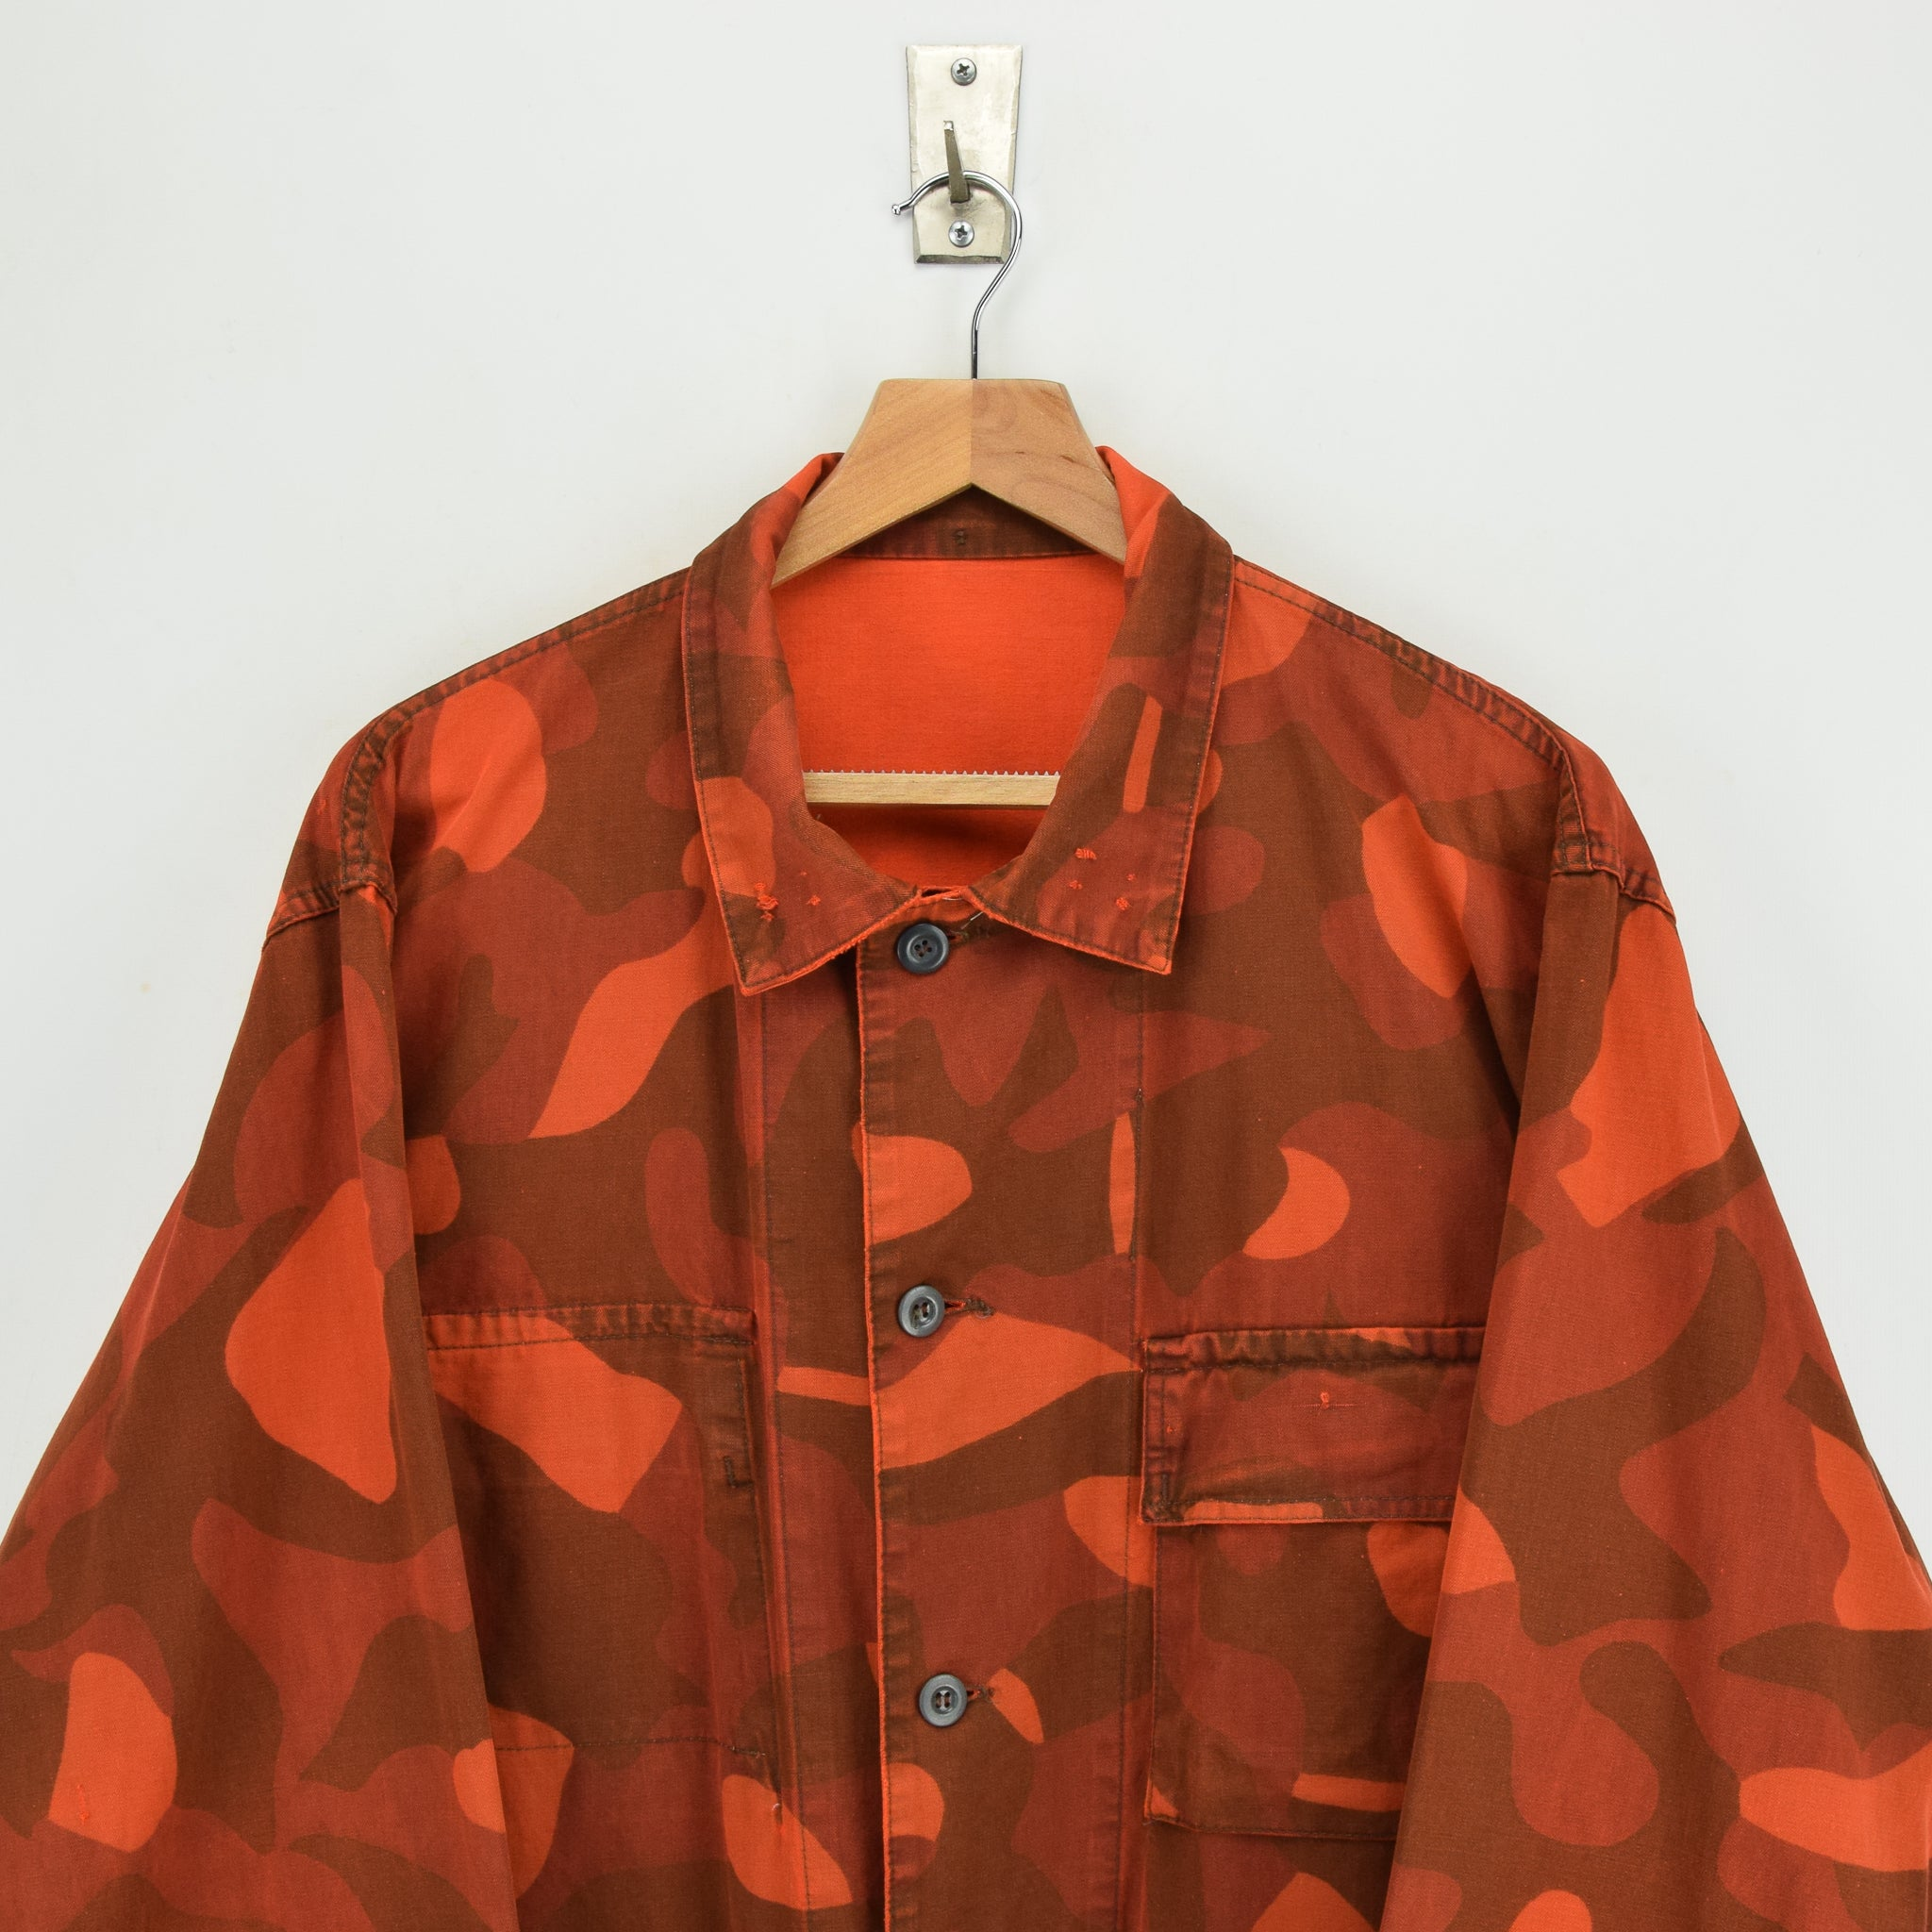 Vintage 80s Military Finnish Army Orange Overdyed Camo Mountain Field Jacket XL chest